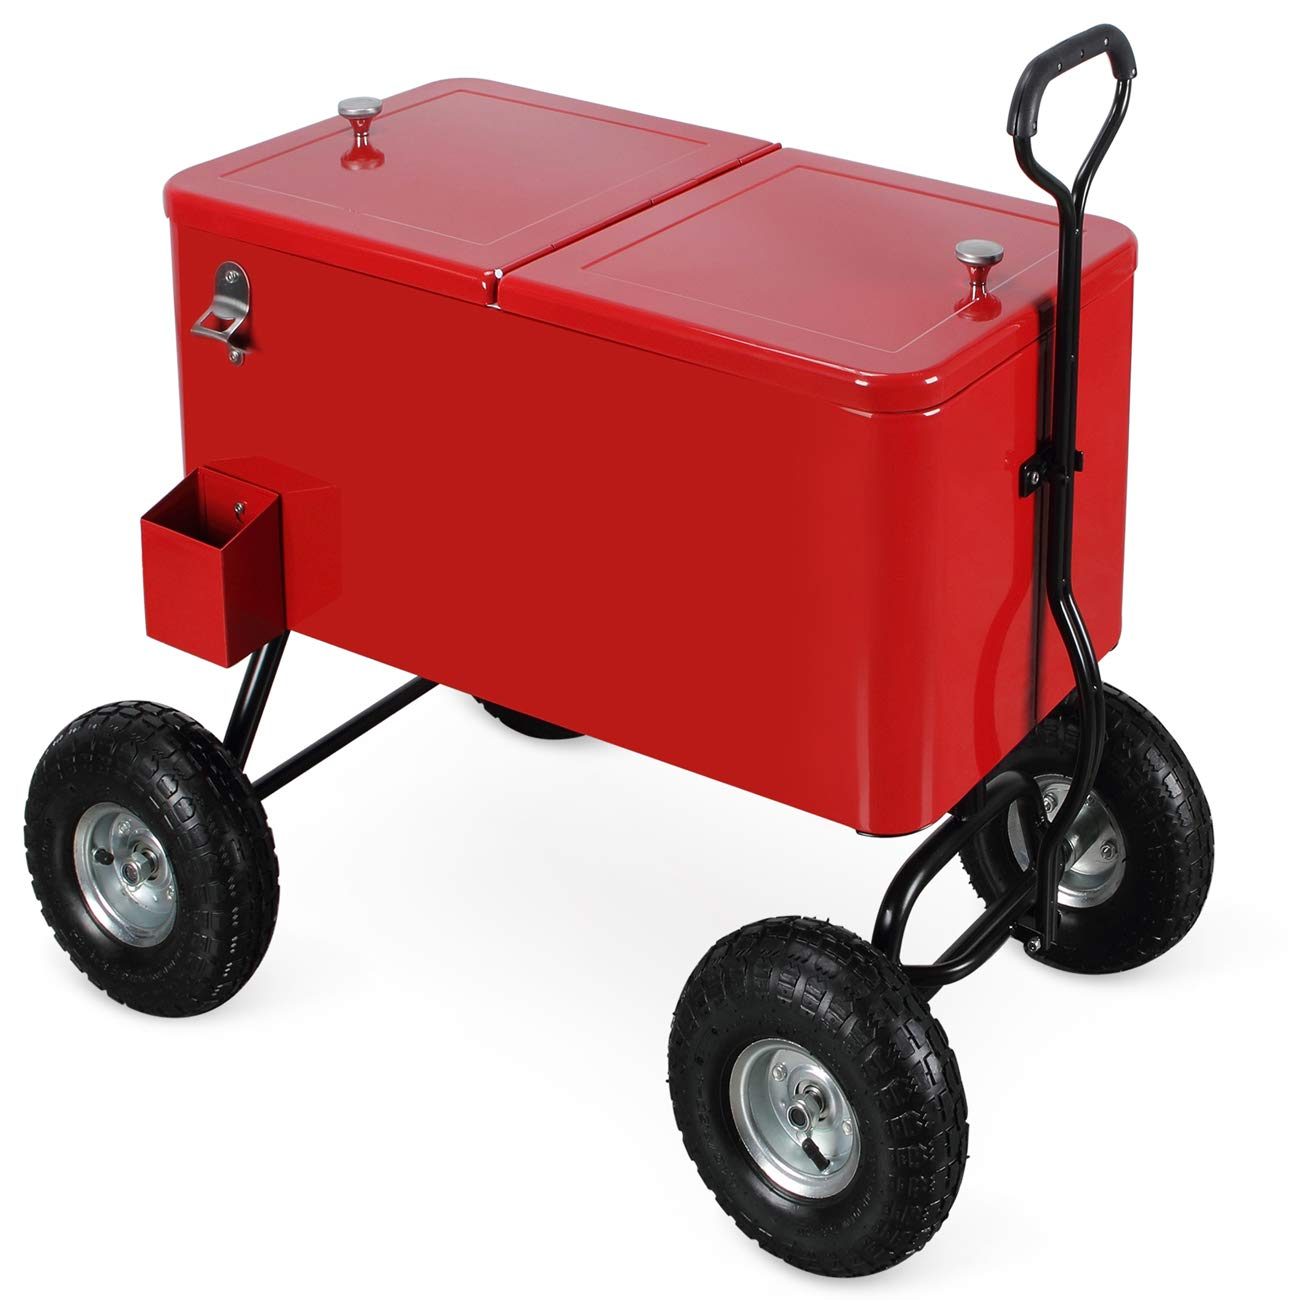 Belleze Outdoor 80 Qt Rolling Beverages Ice Chest Beach Party Patio Backyard Wagon w/ 10' Terrain Wheels, Red